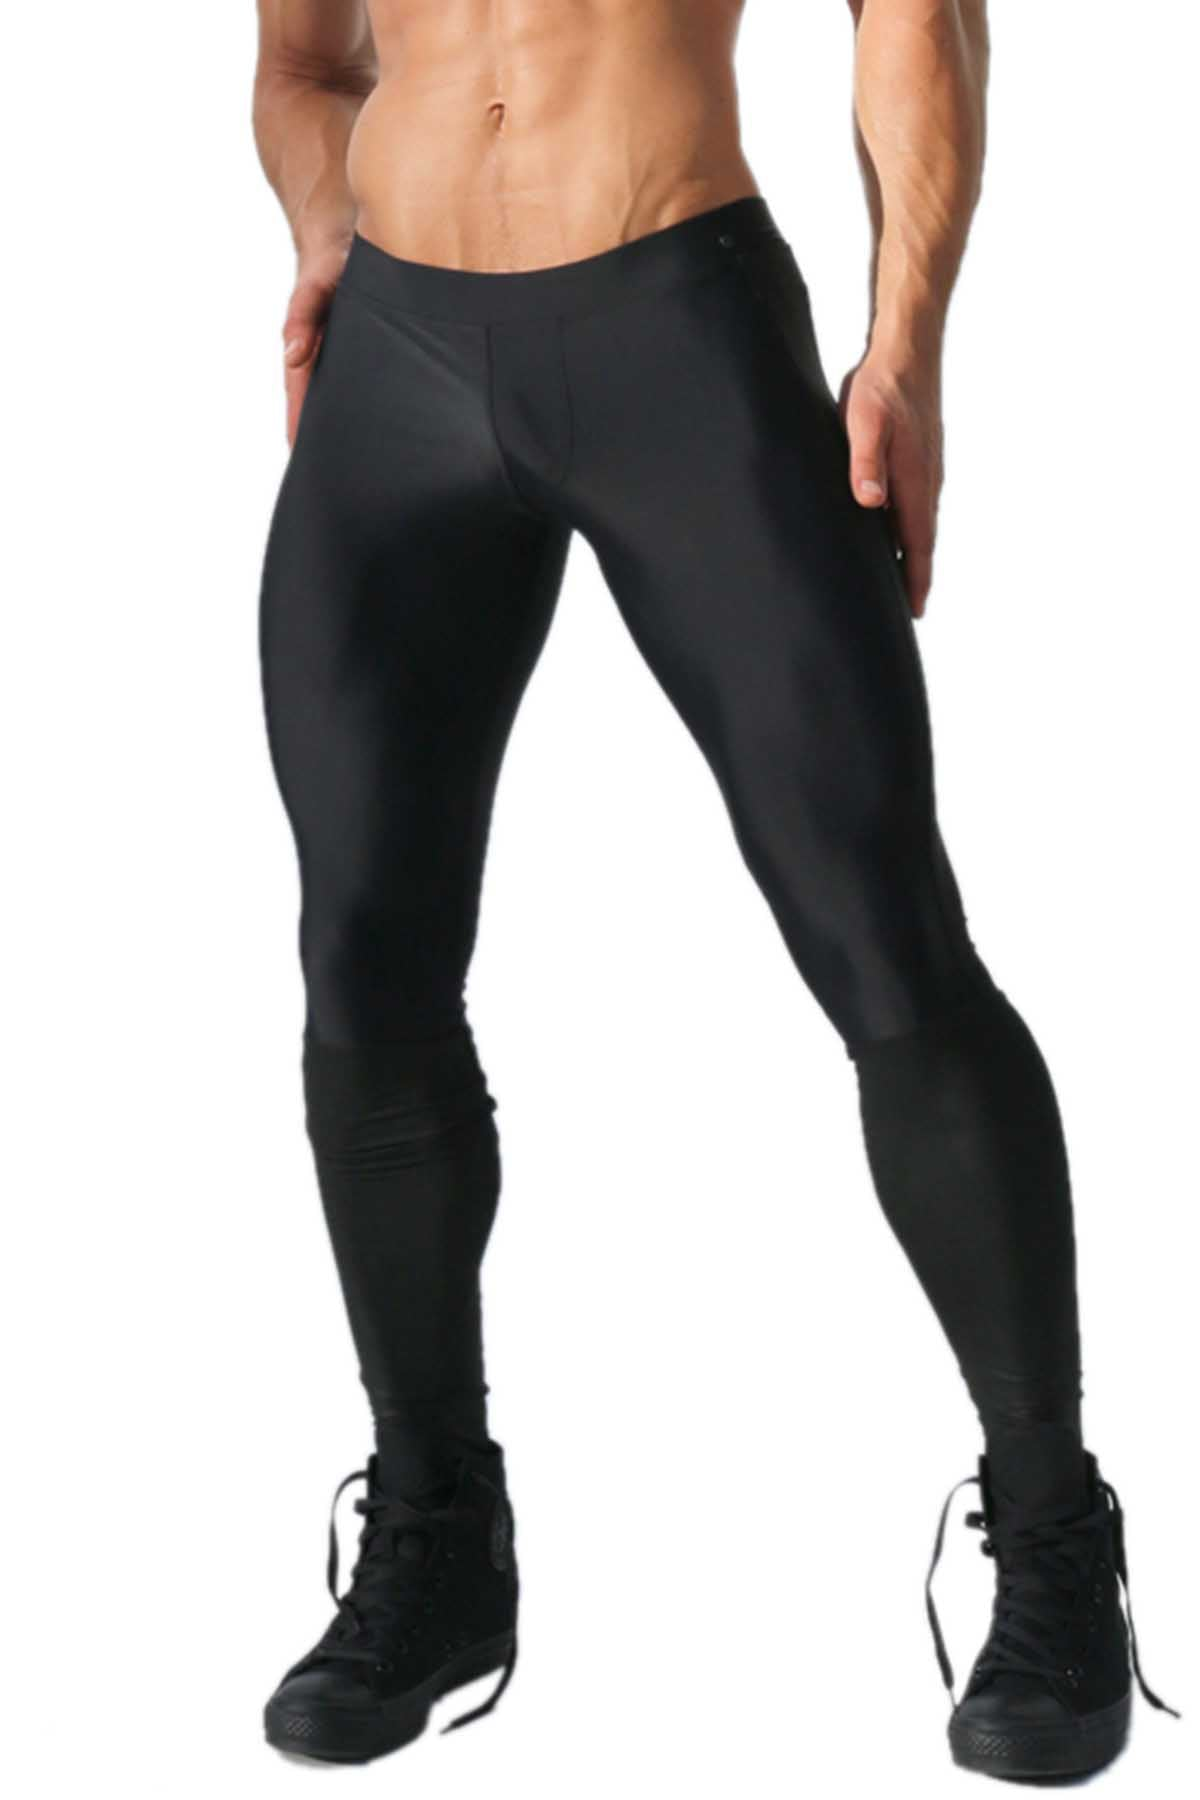 Rufskin Black Tom of Finland Thorpe Leggings